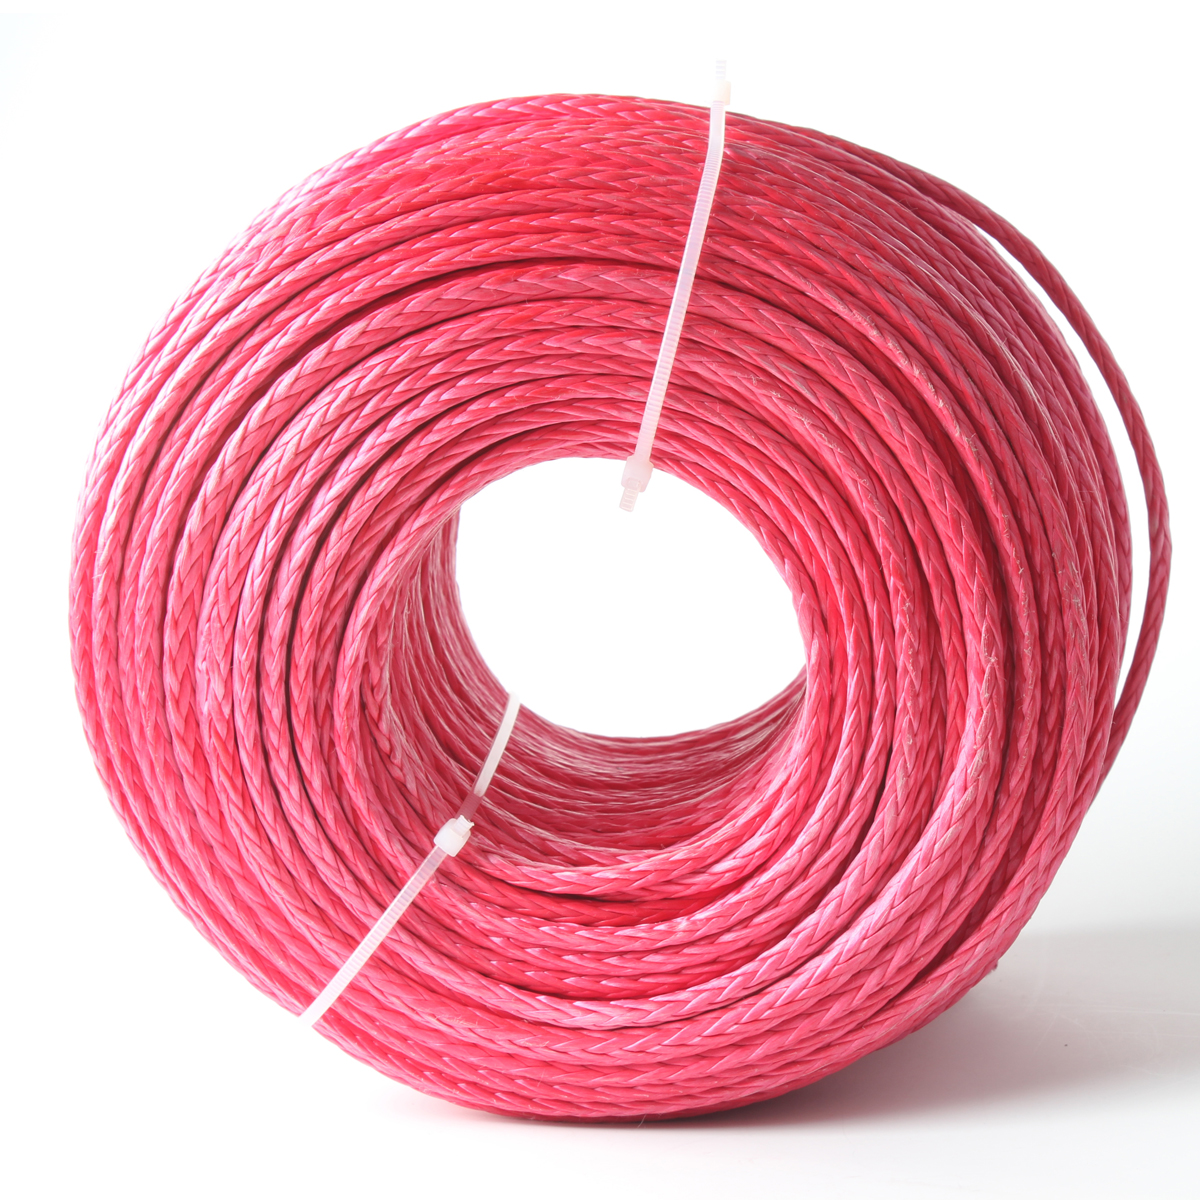 Spectra uhmwpe yacht braid rope 6mm